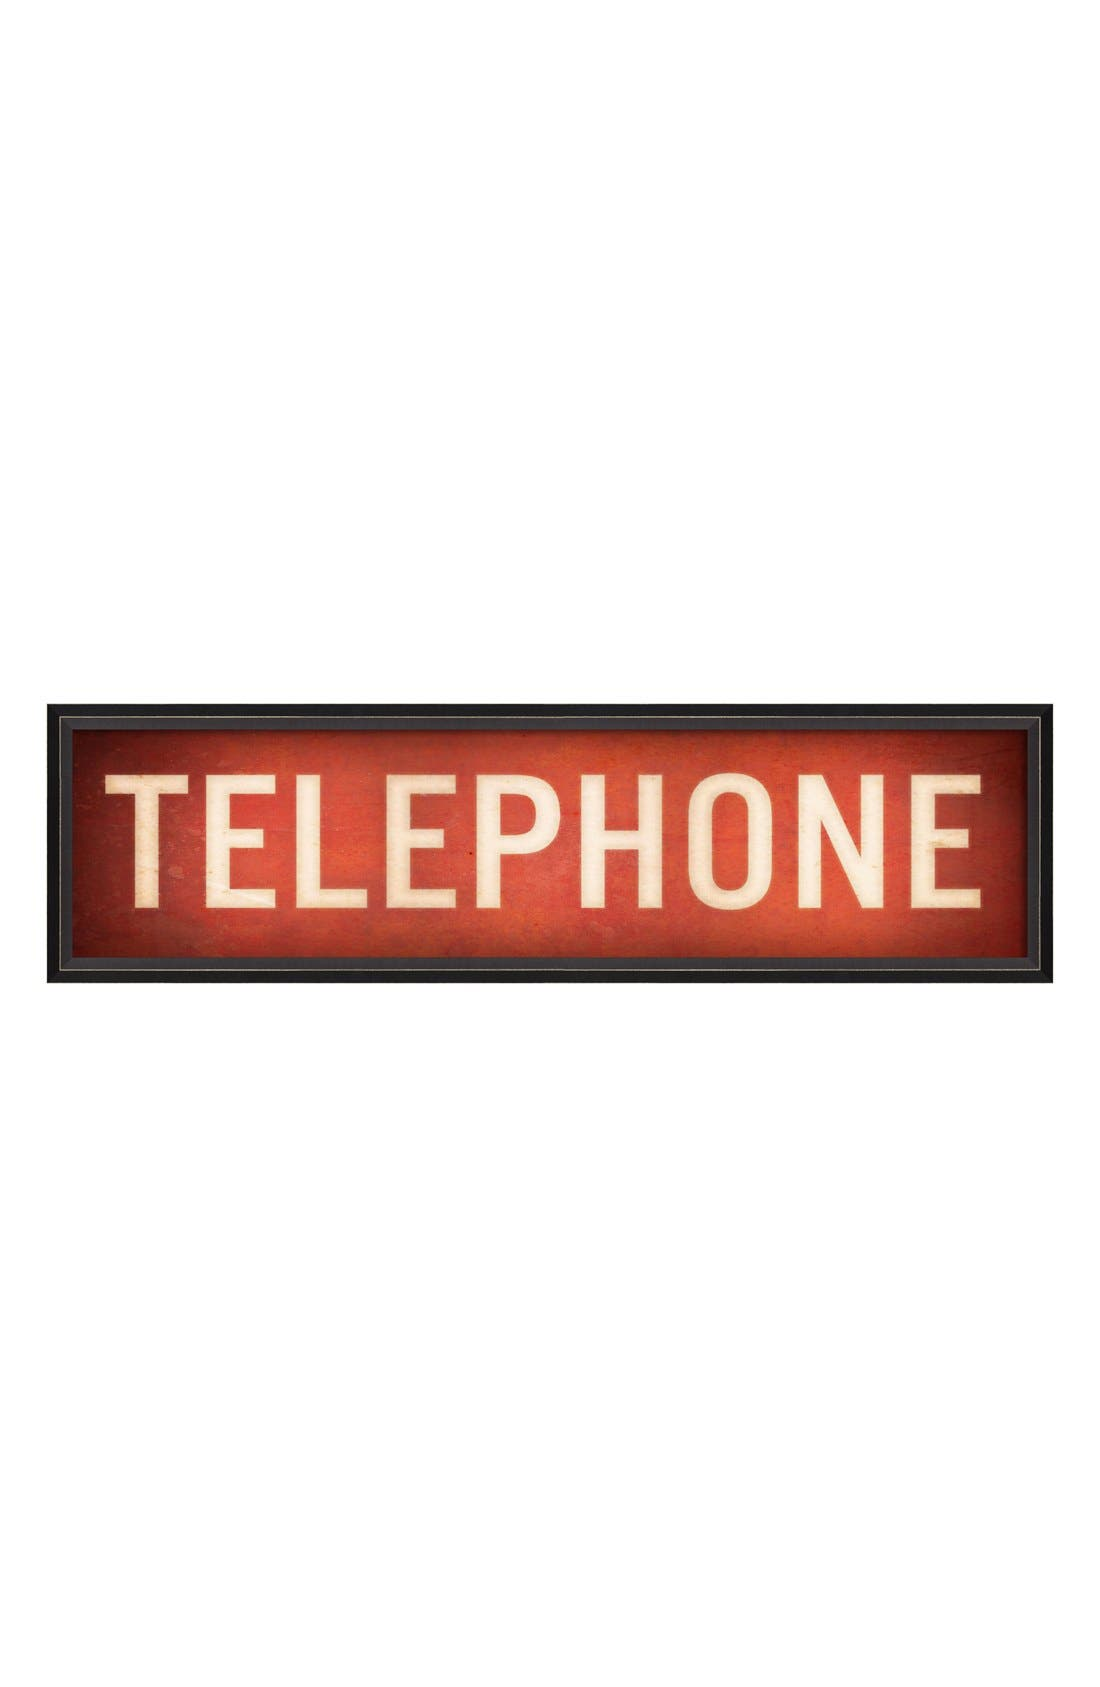 Main Image - Spicher and Company 'Telephone' Vintage Look Sign Artwork